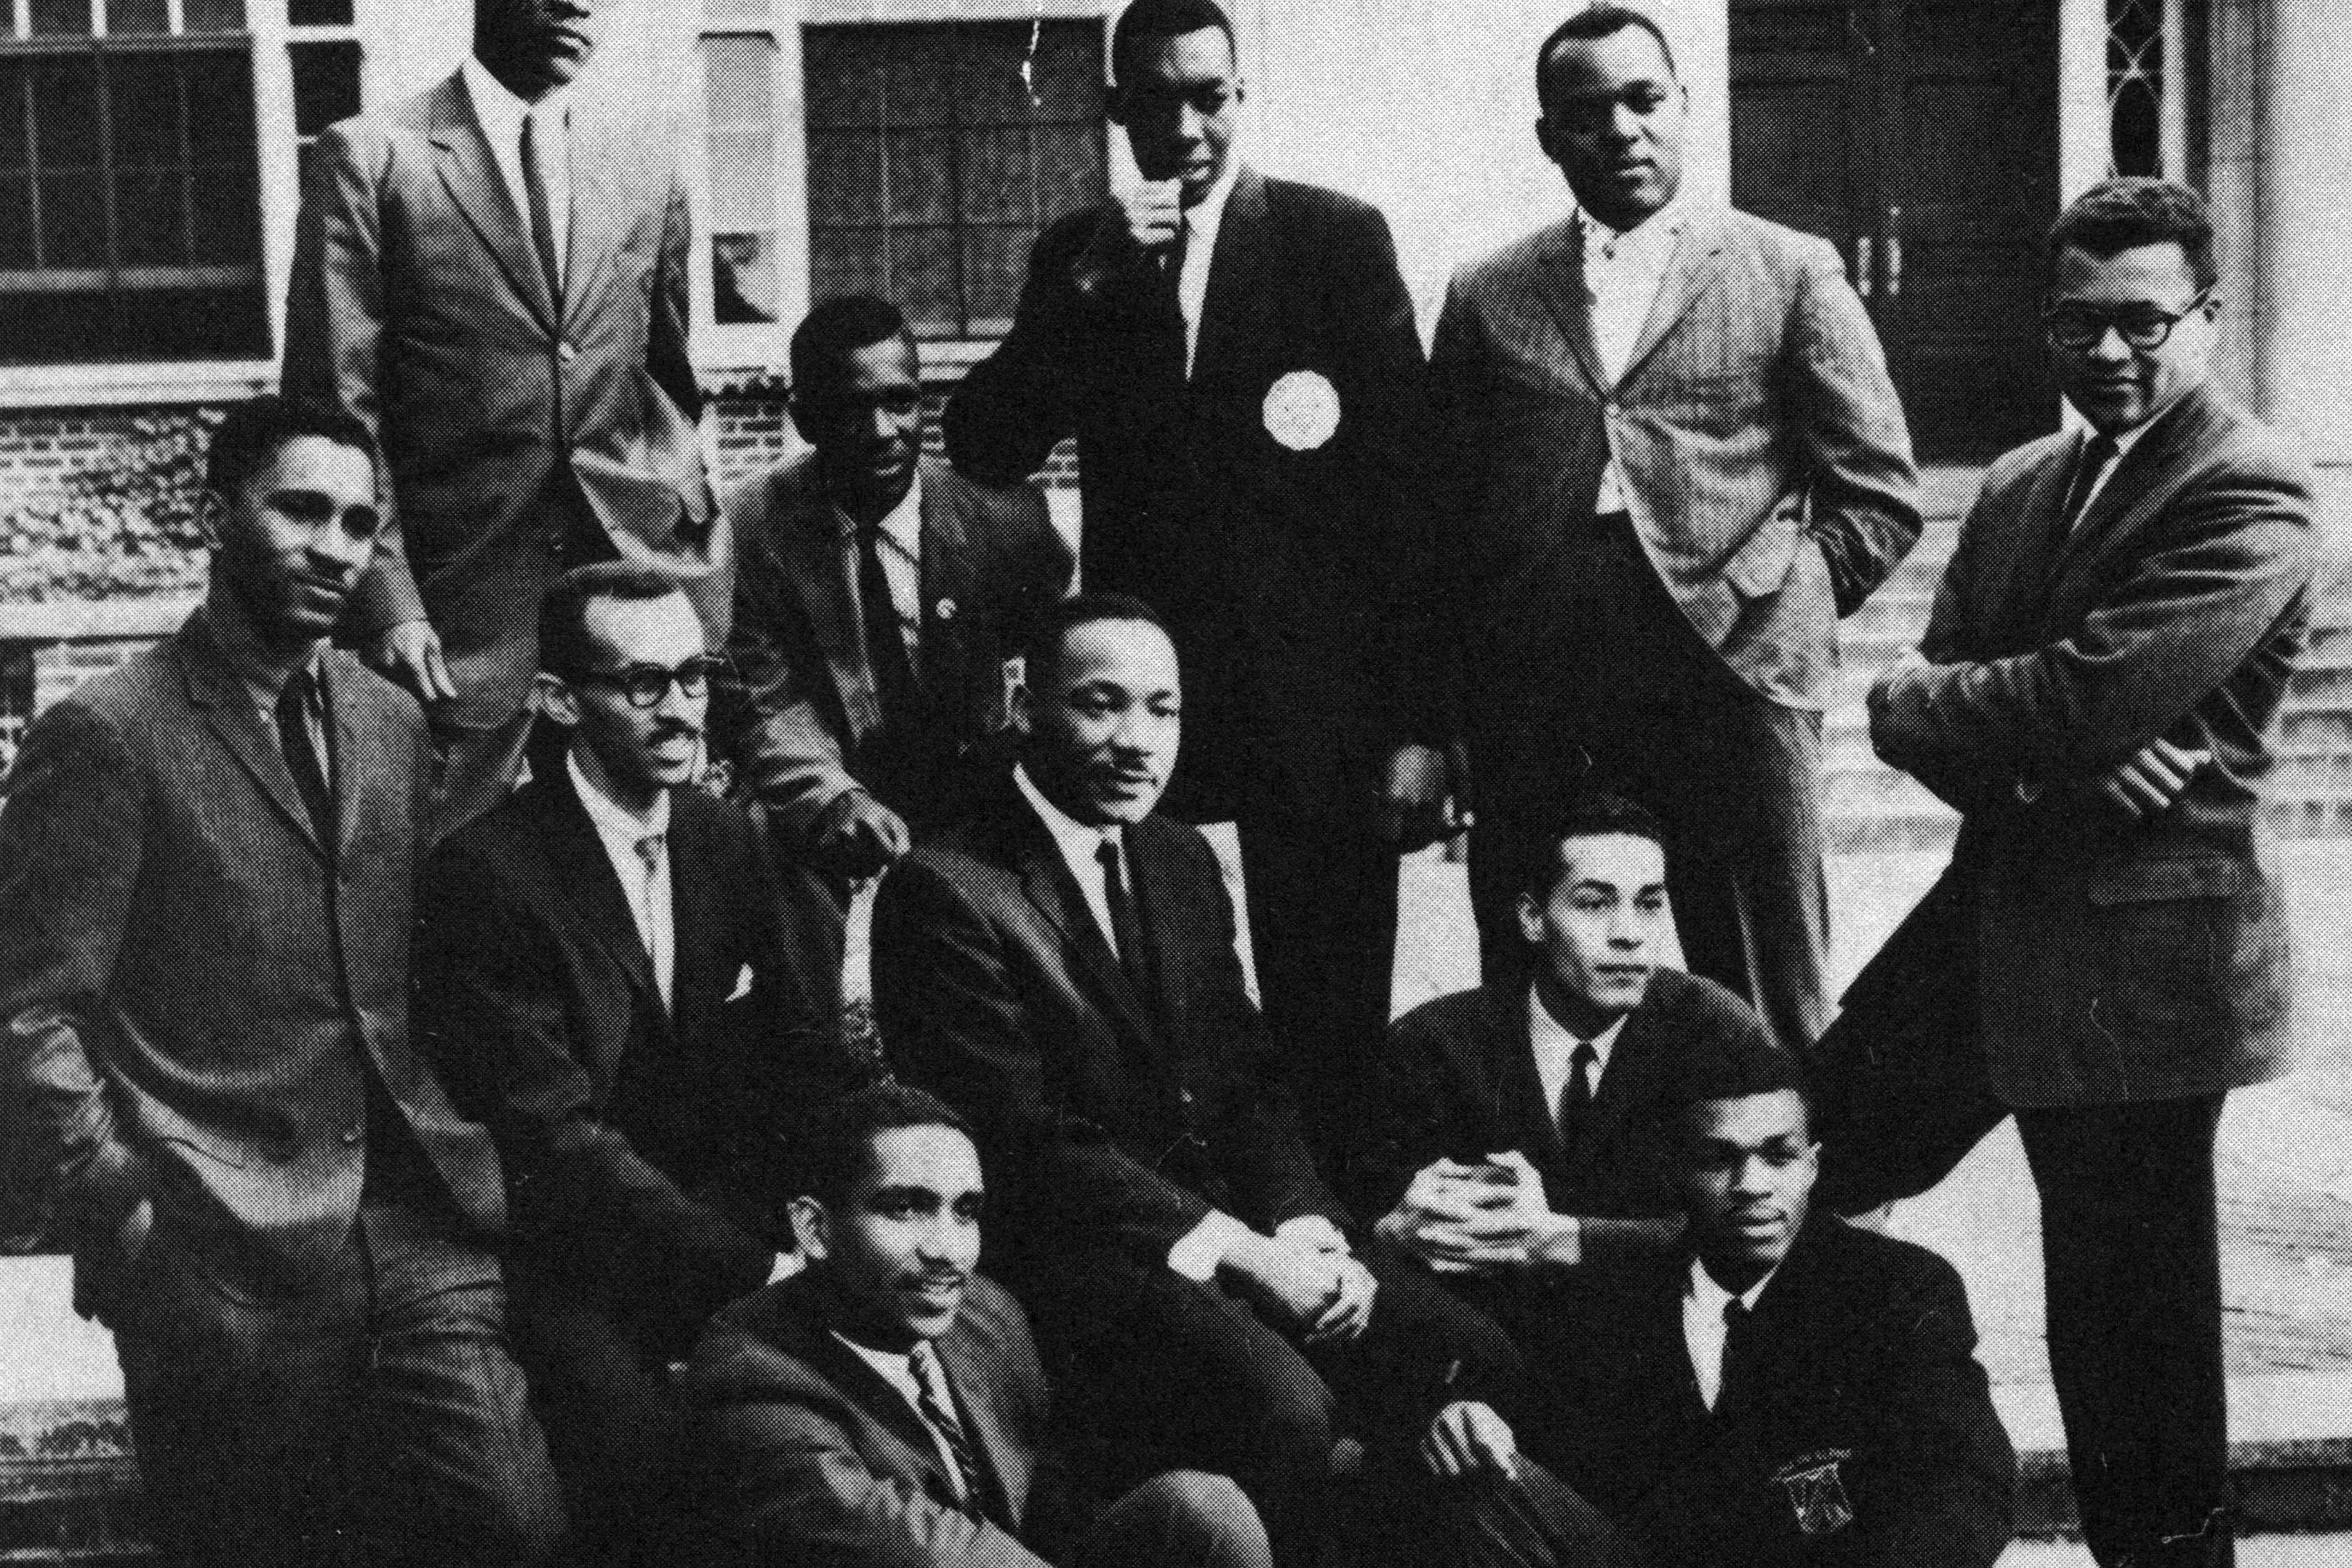 Members of the Student Nonviolent Coordinating Committee posing with Dr. Martin Luther King Jr. on stairs